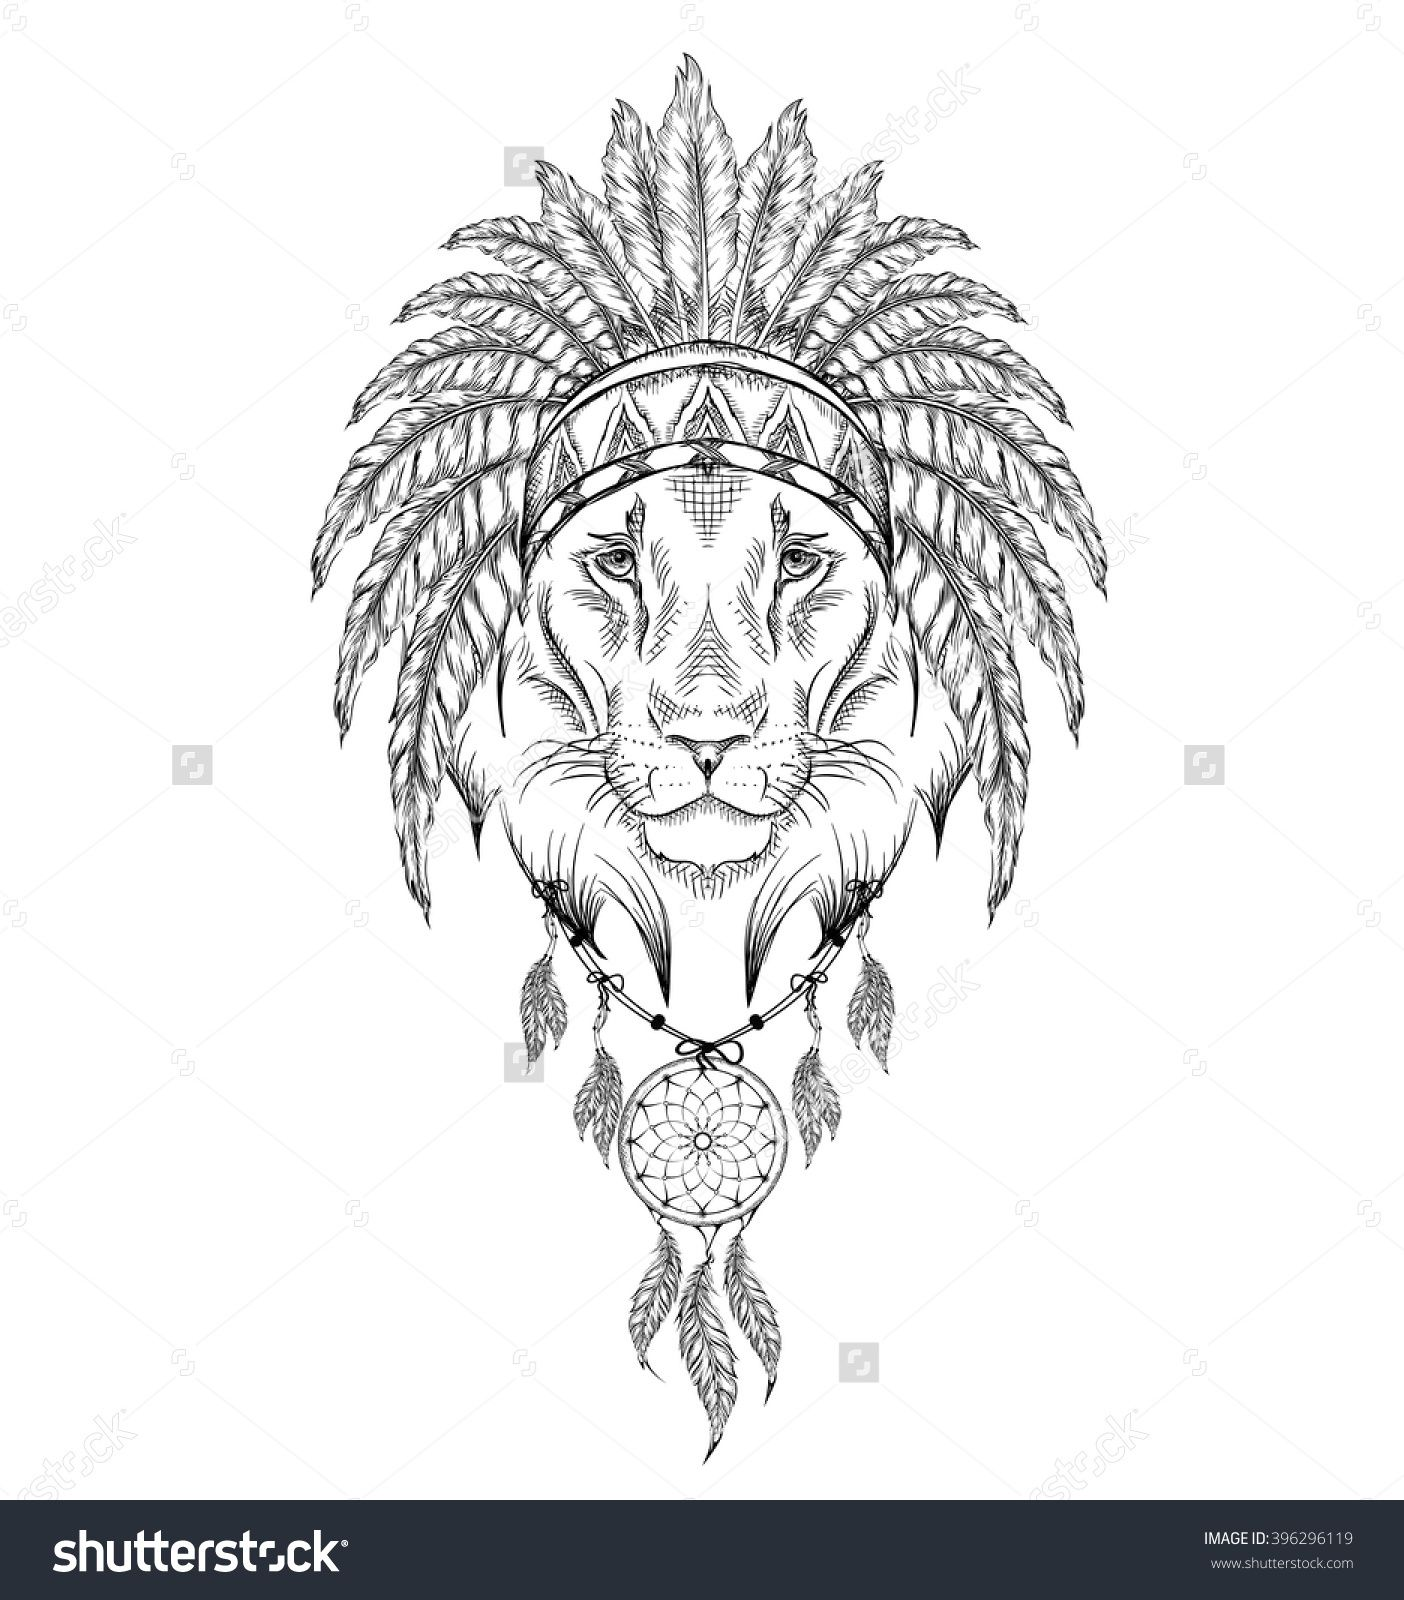 Lion In The Indian Roach. Indian Feather Headdress Of